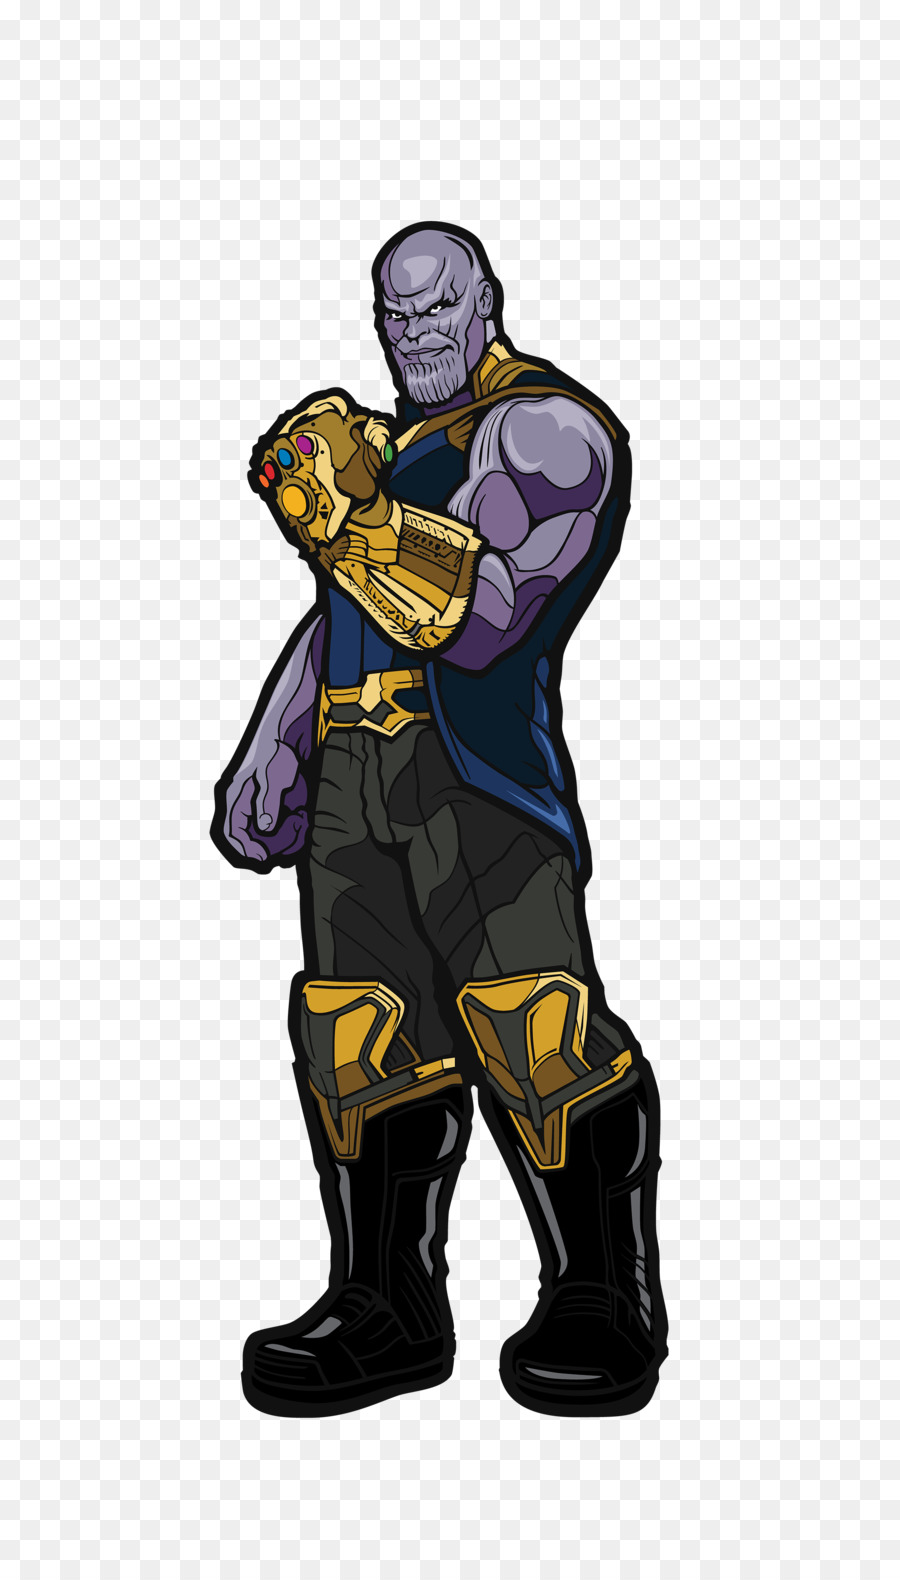 Thanos The Avengers Black Panther Thor Collector Infinity Gauntlet